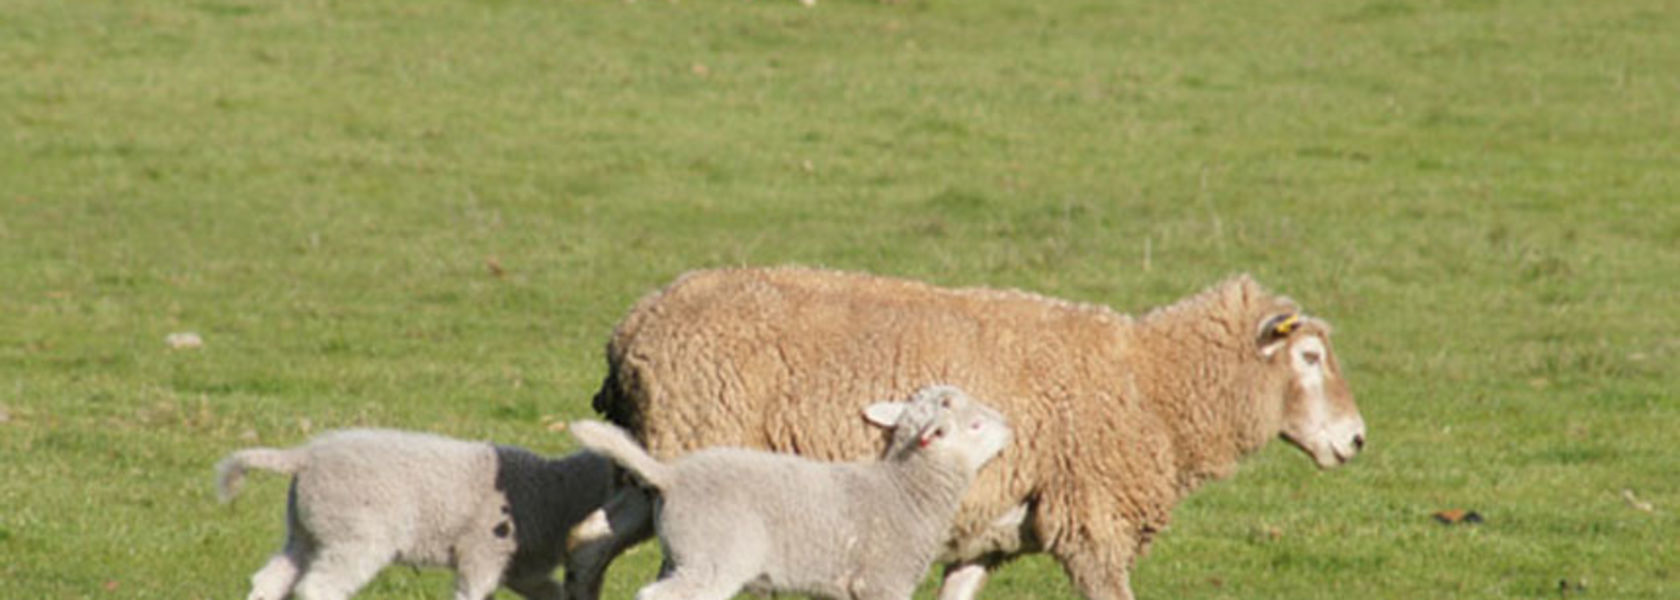 Preg tox warning for twinning ewes